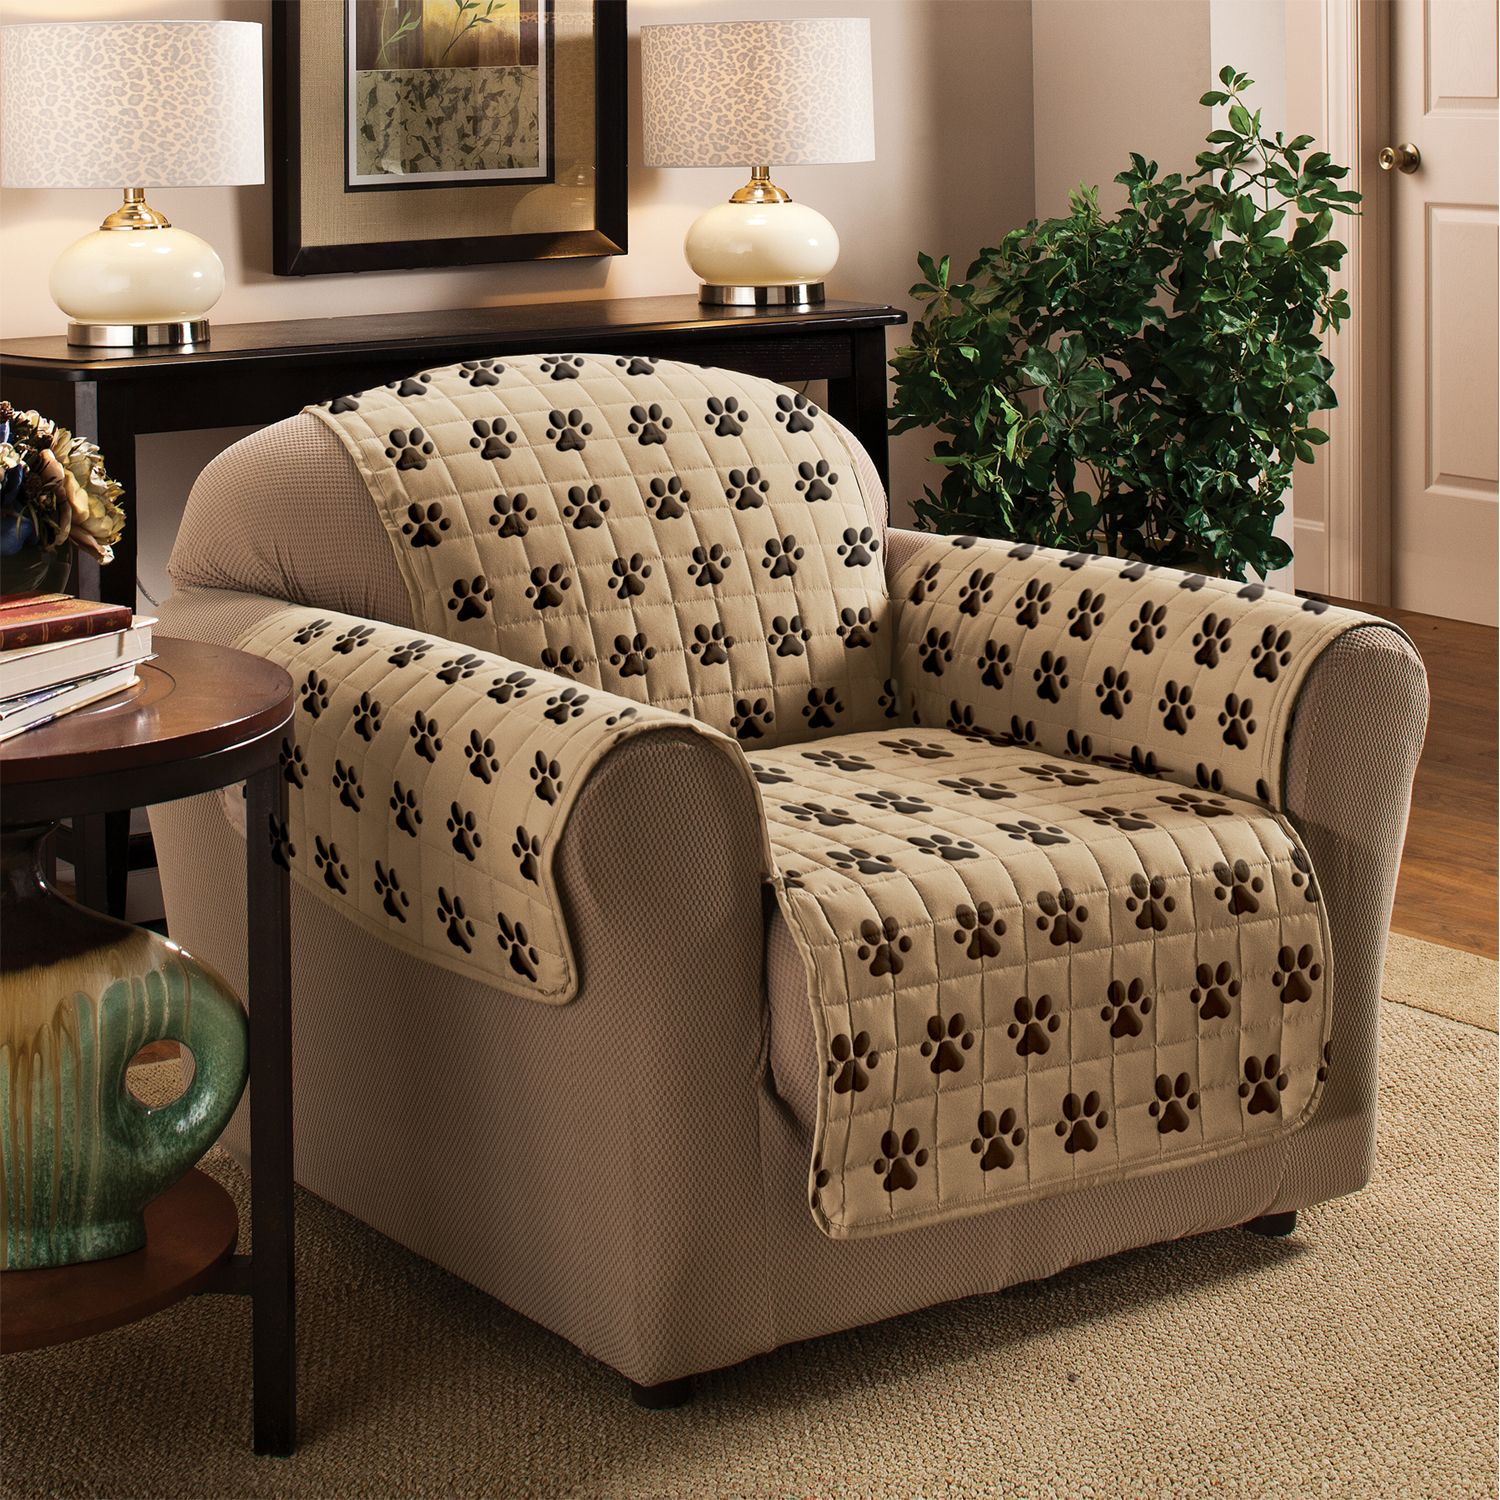 Chiara Rose Shield Futon Couch Pet Cover Sofa Smoke Pattern Couch